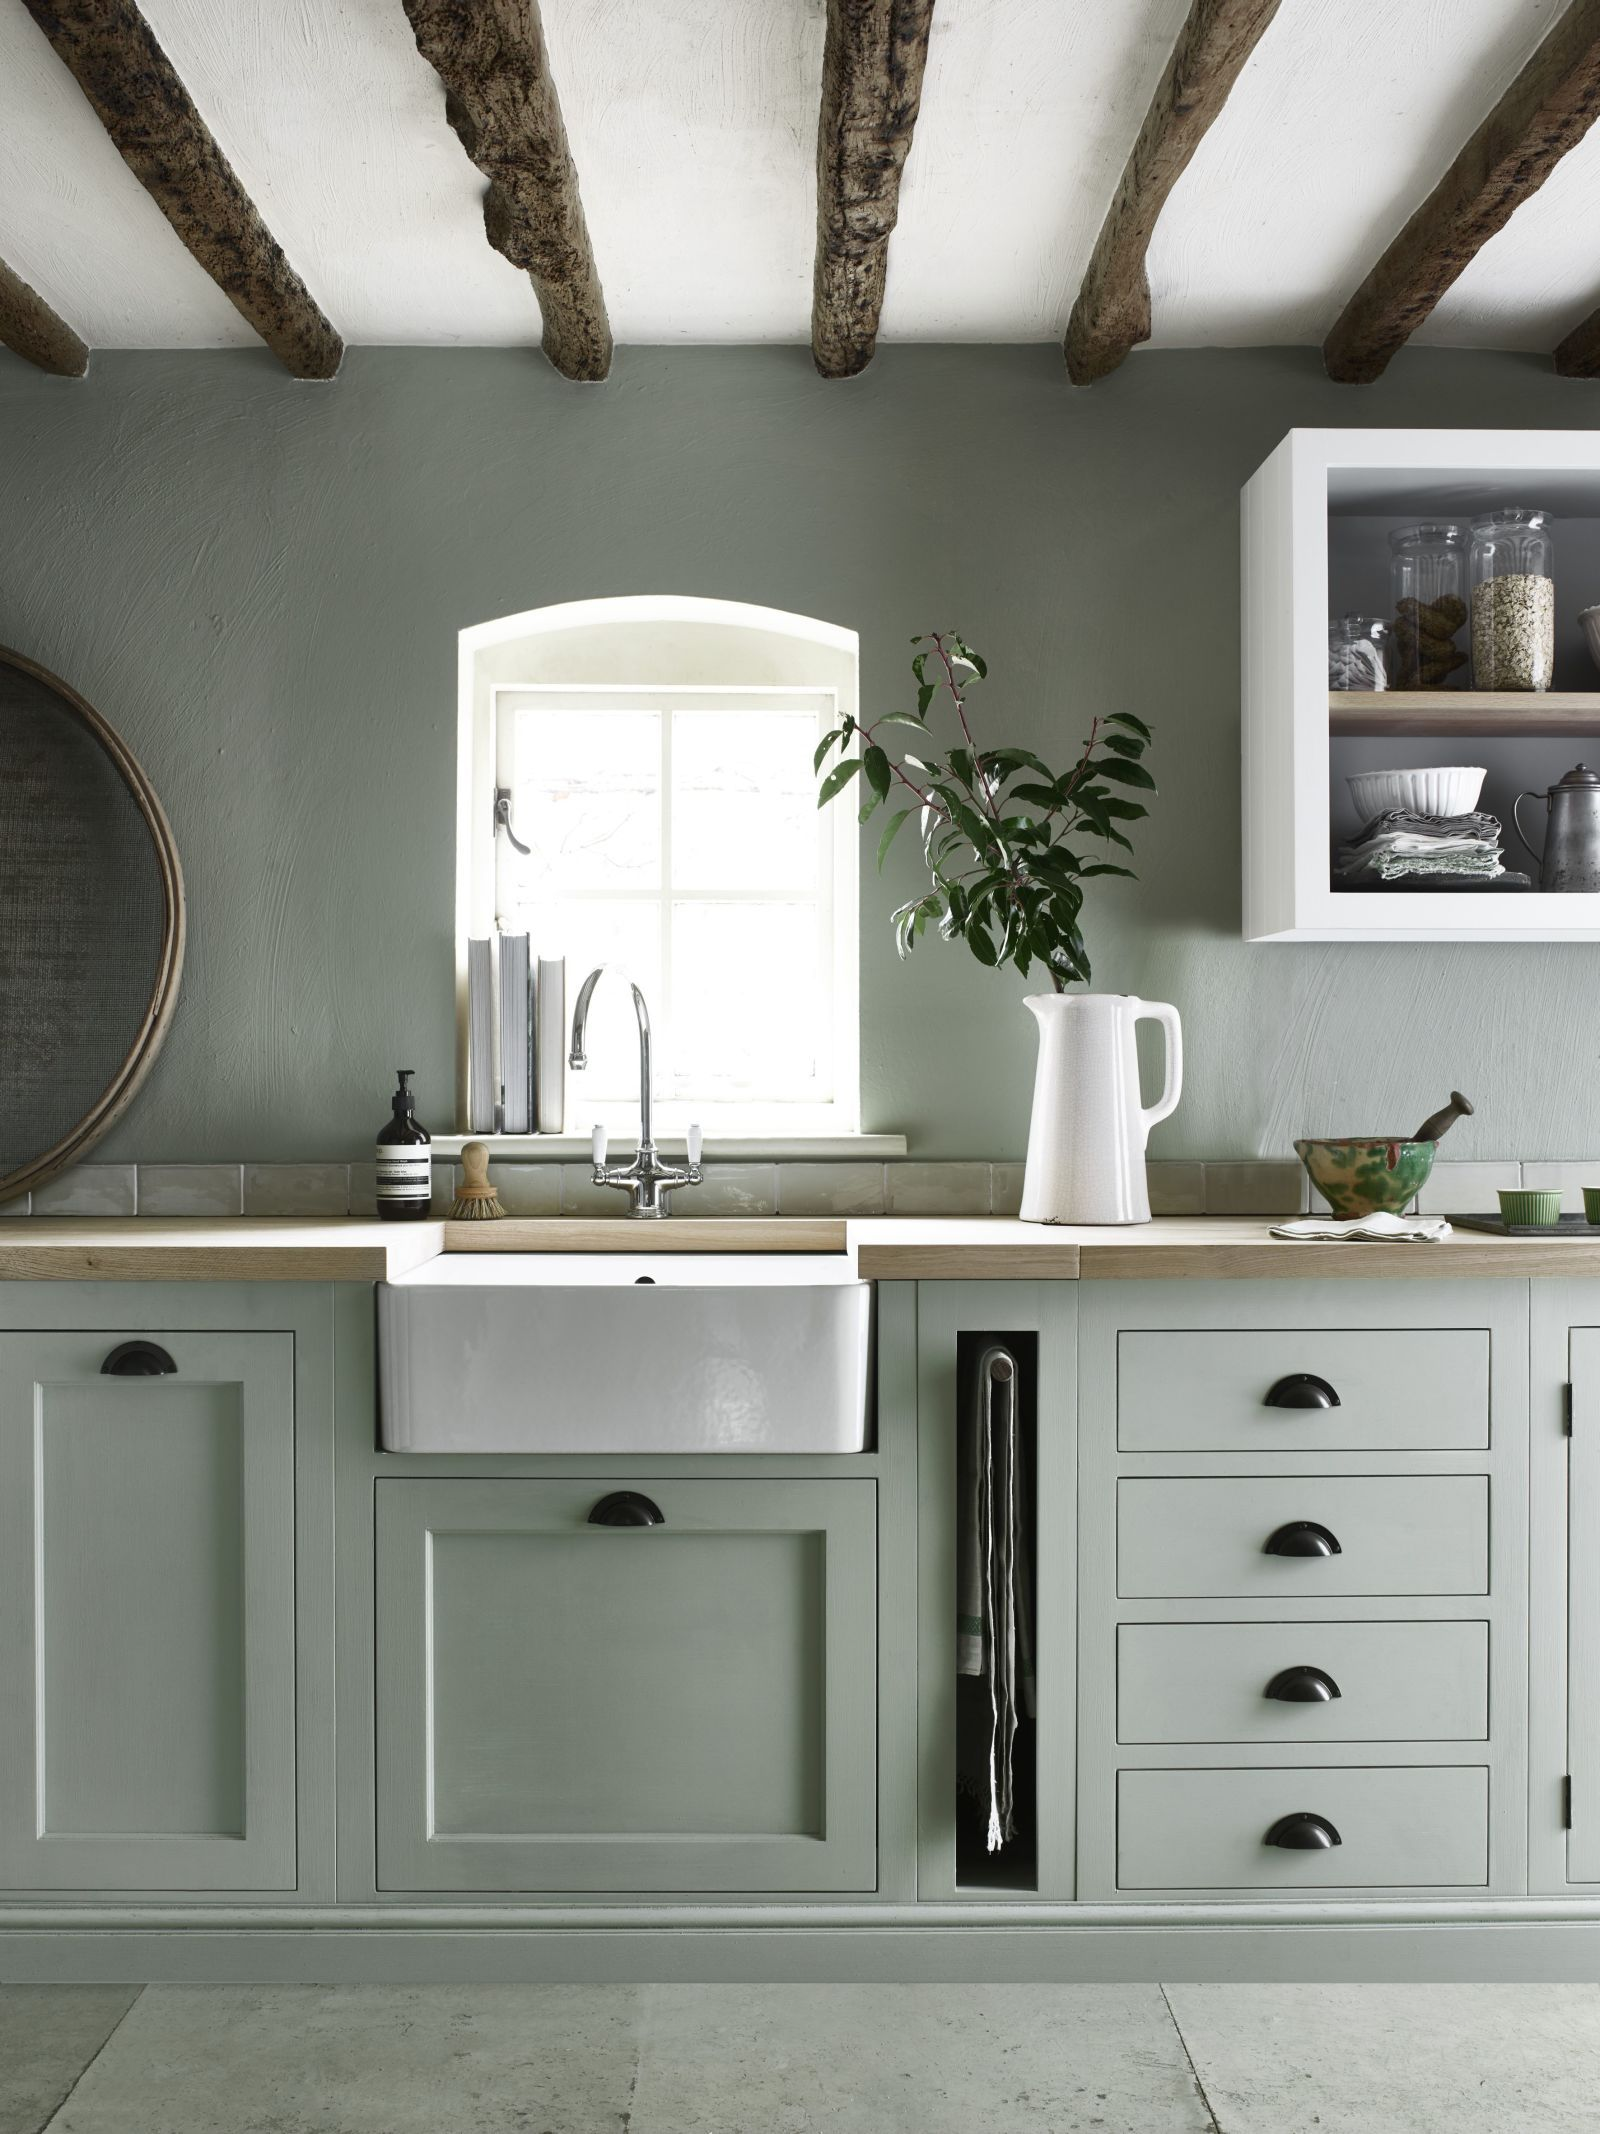 7 ways to create a country kitchen that's fit for 2018 | inspire